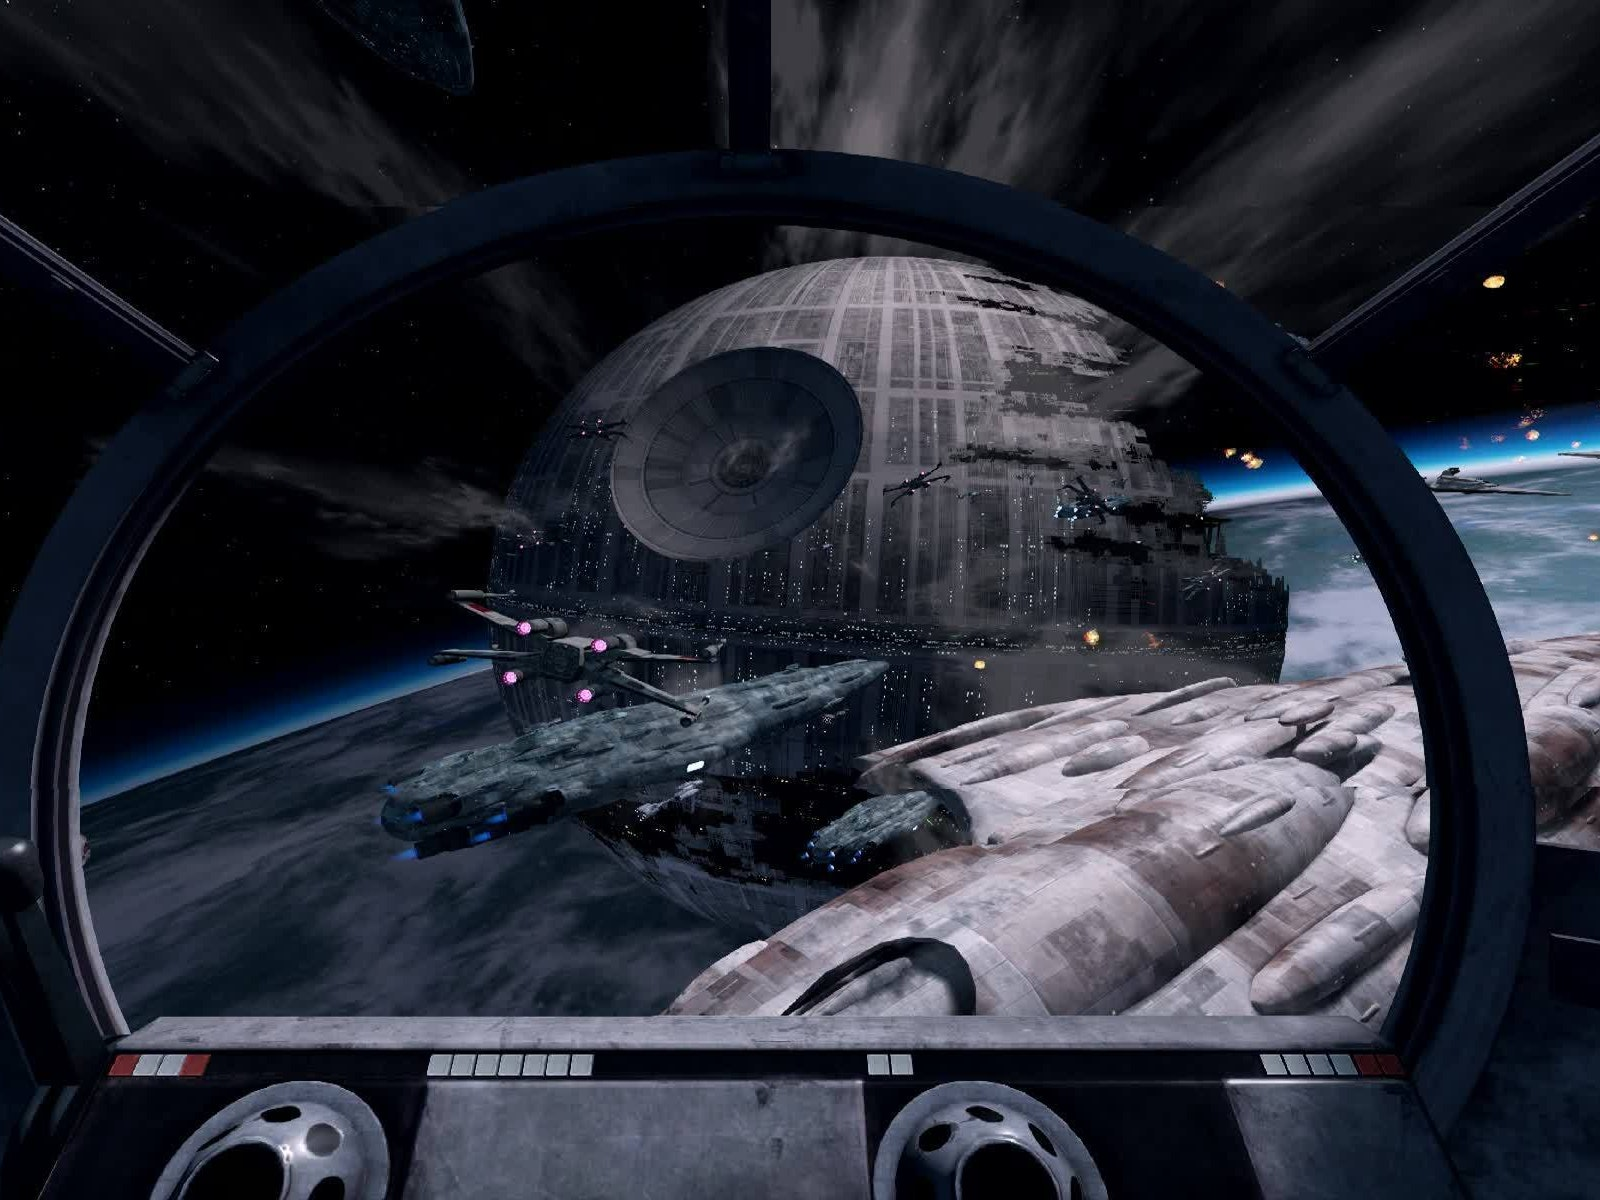 Next Generation 'Star Wars' Arcade Games Hit the Market